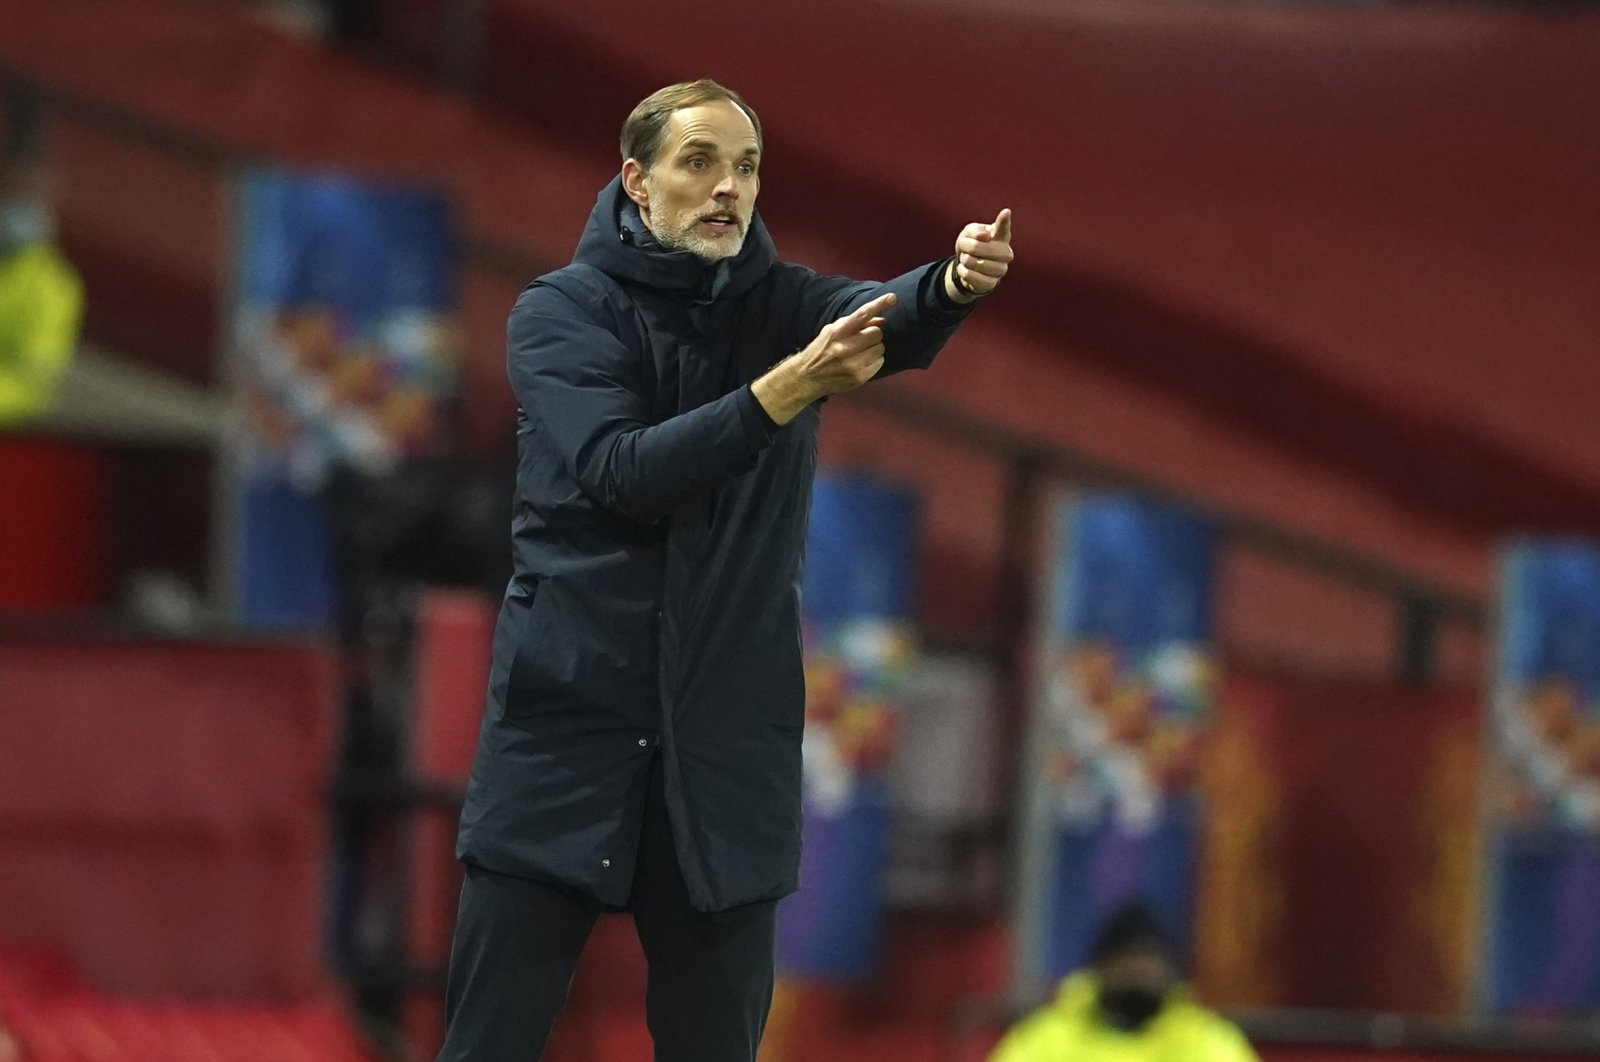 PSG coach Thomas Tuchel gestures during a Champions League match against Manchester United at the Old Trafford stadium in Manchester, England, Dec. 2, 2020. (AP Photo)